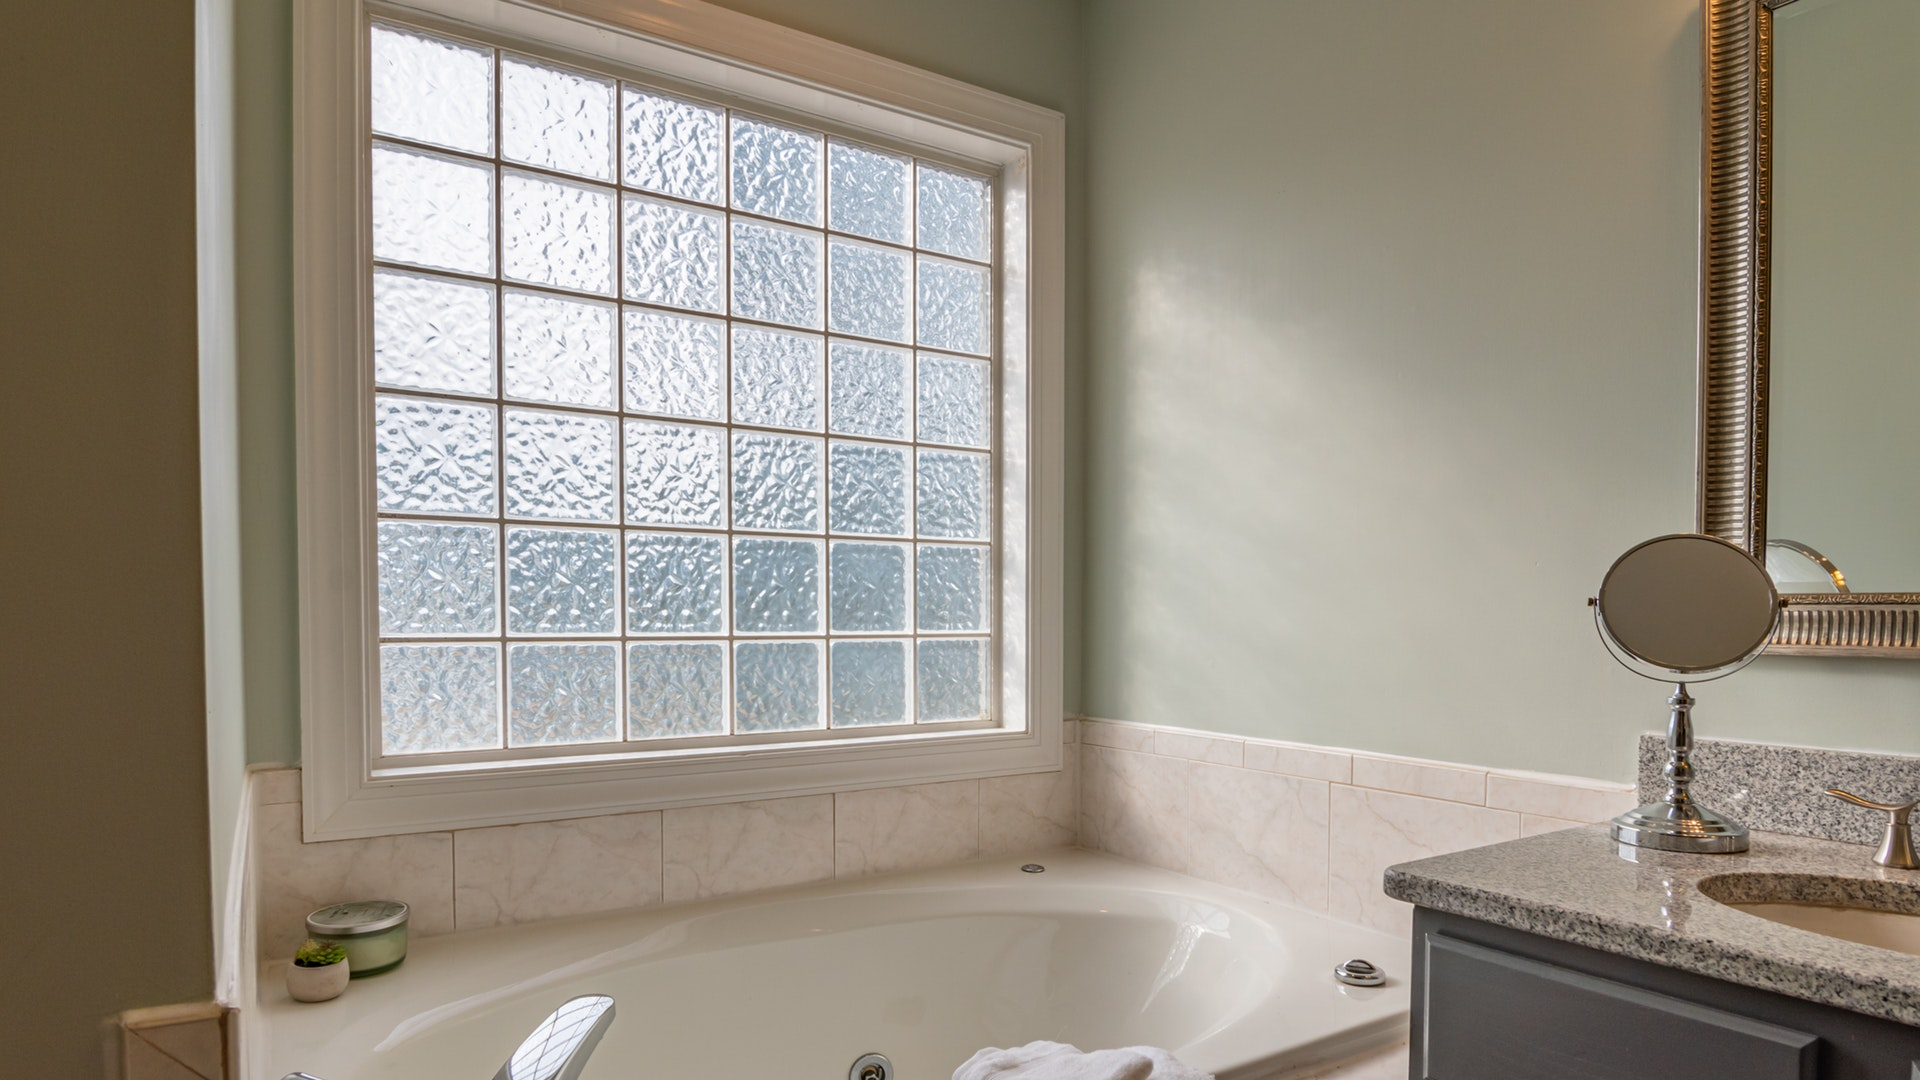 4 Home Addition Ideas To Increase Your Square Footage Bathroom Picture